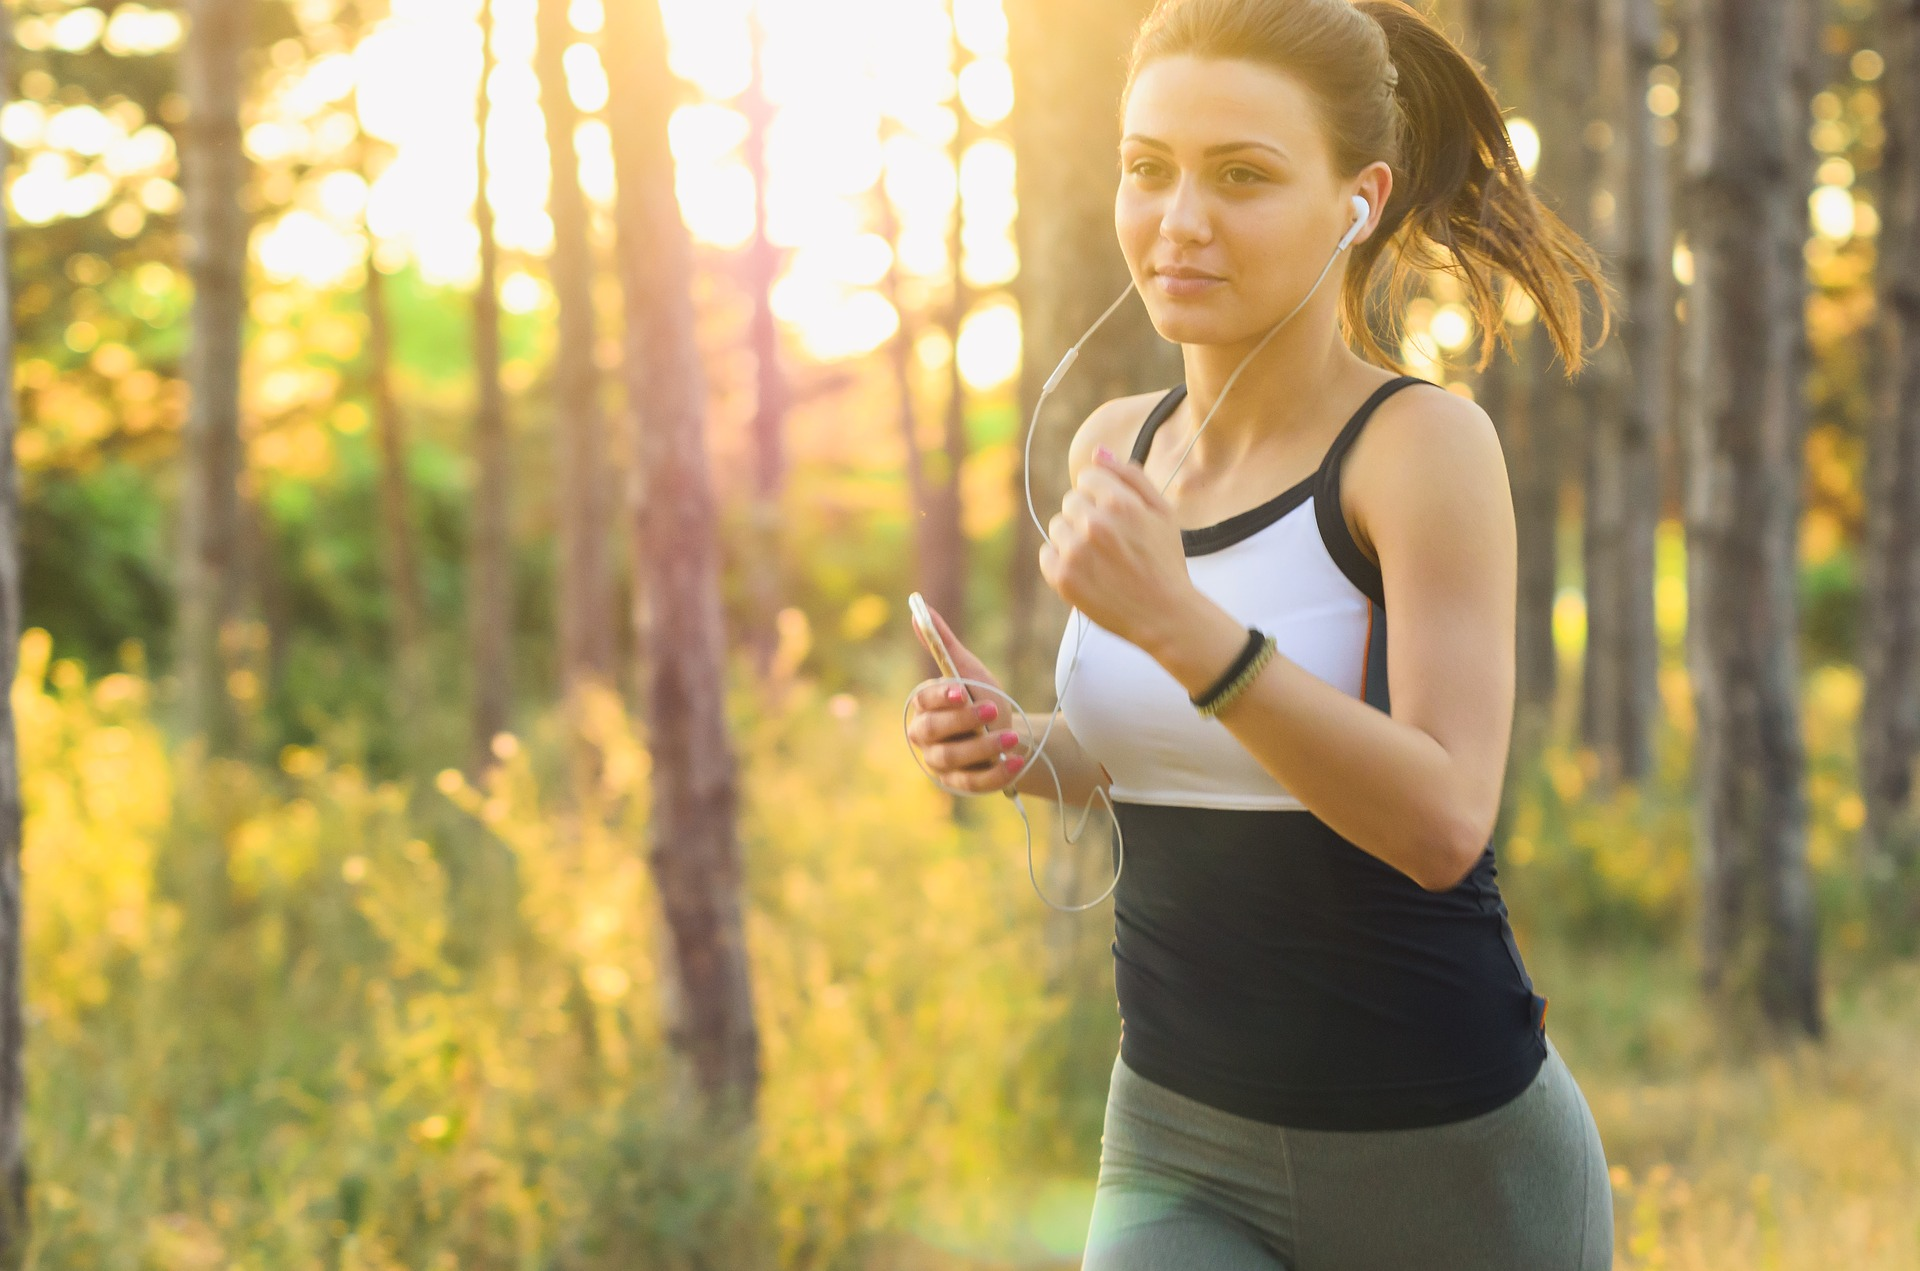 girl holding a phone and wearing a headset is doing some jogging at the park